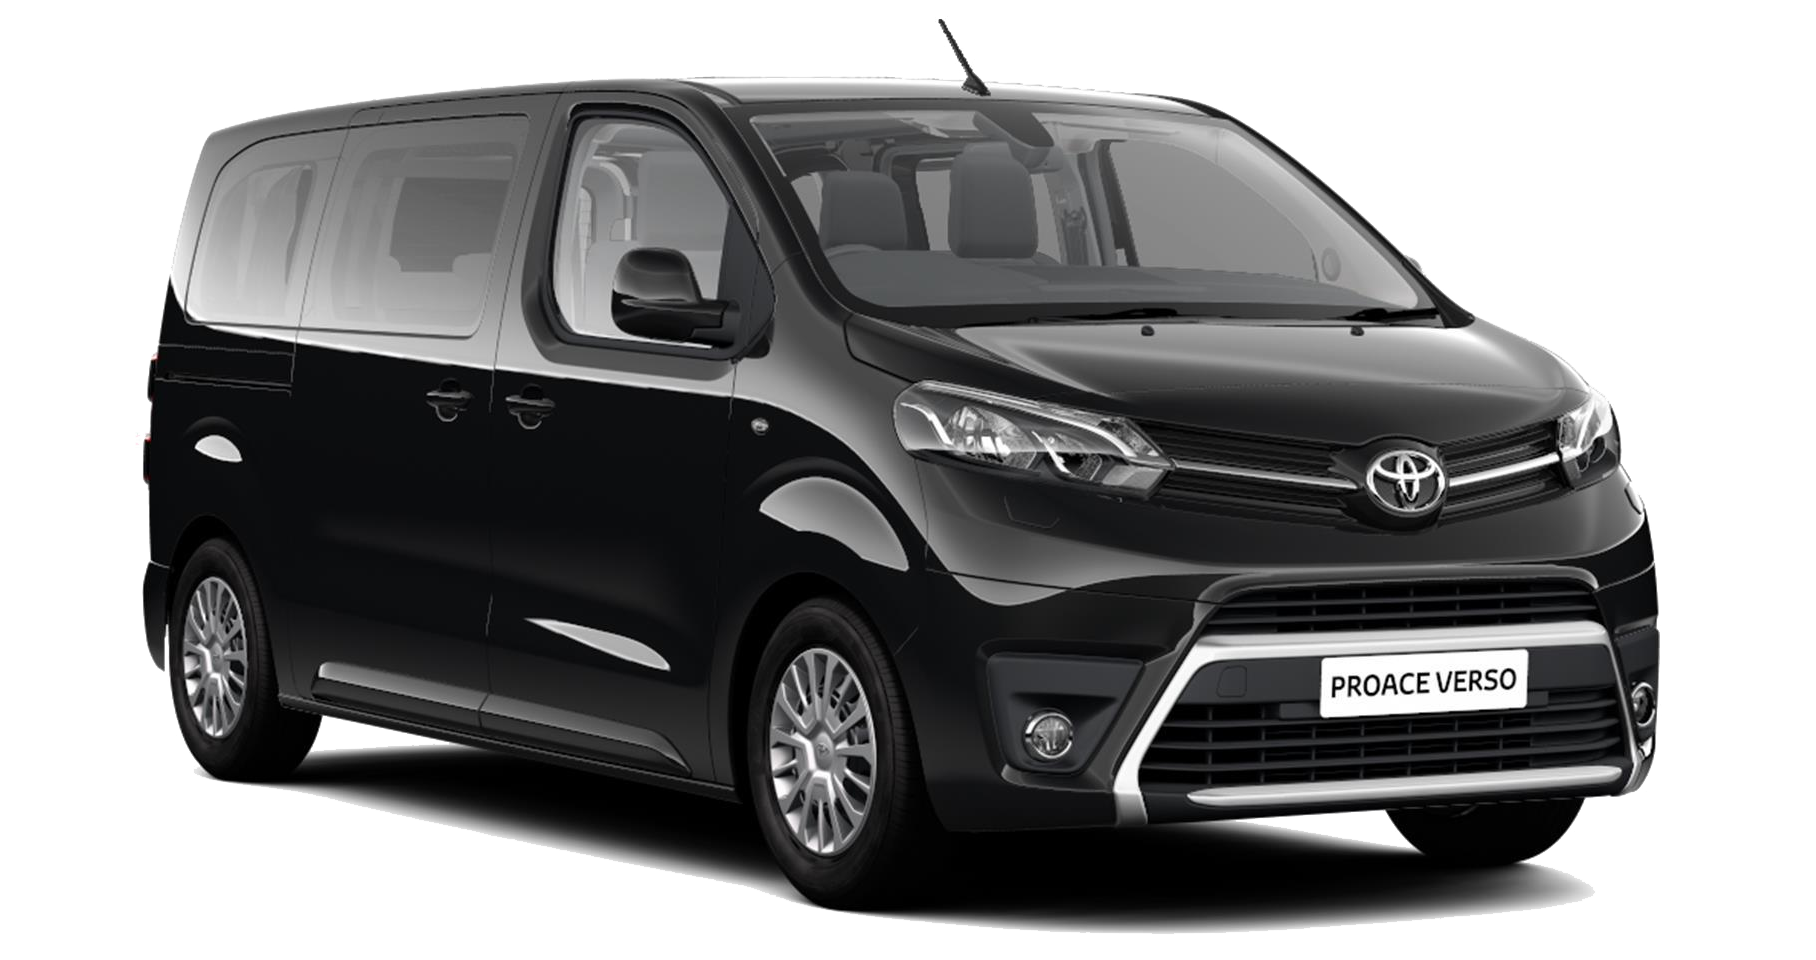 Toyota Proace Verso - Available in Black Opal